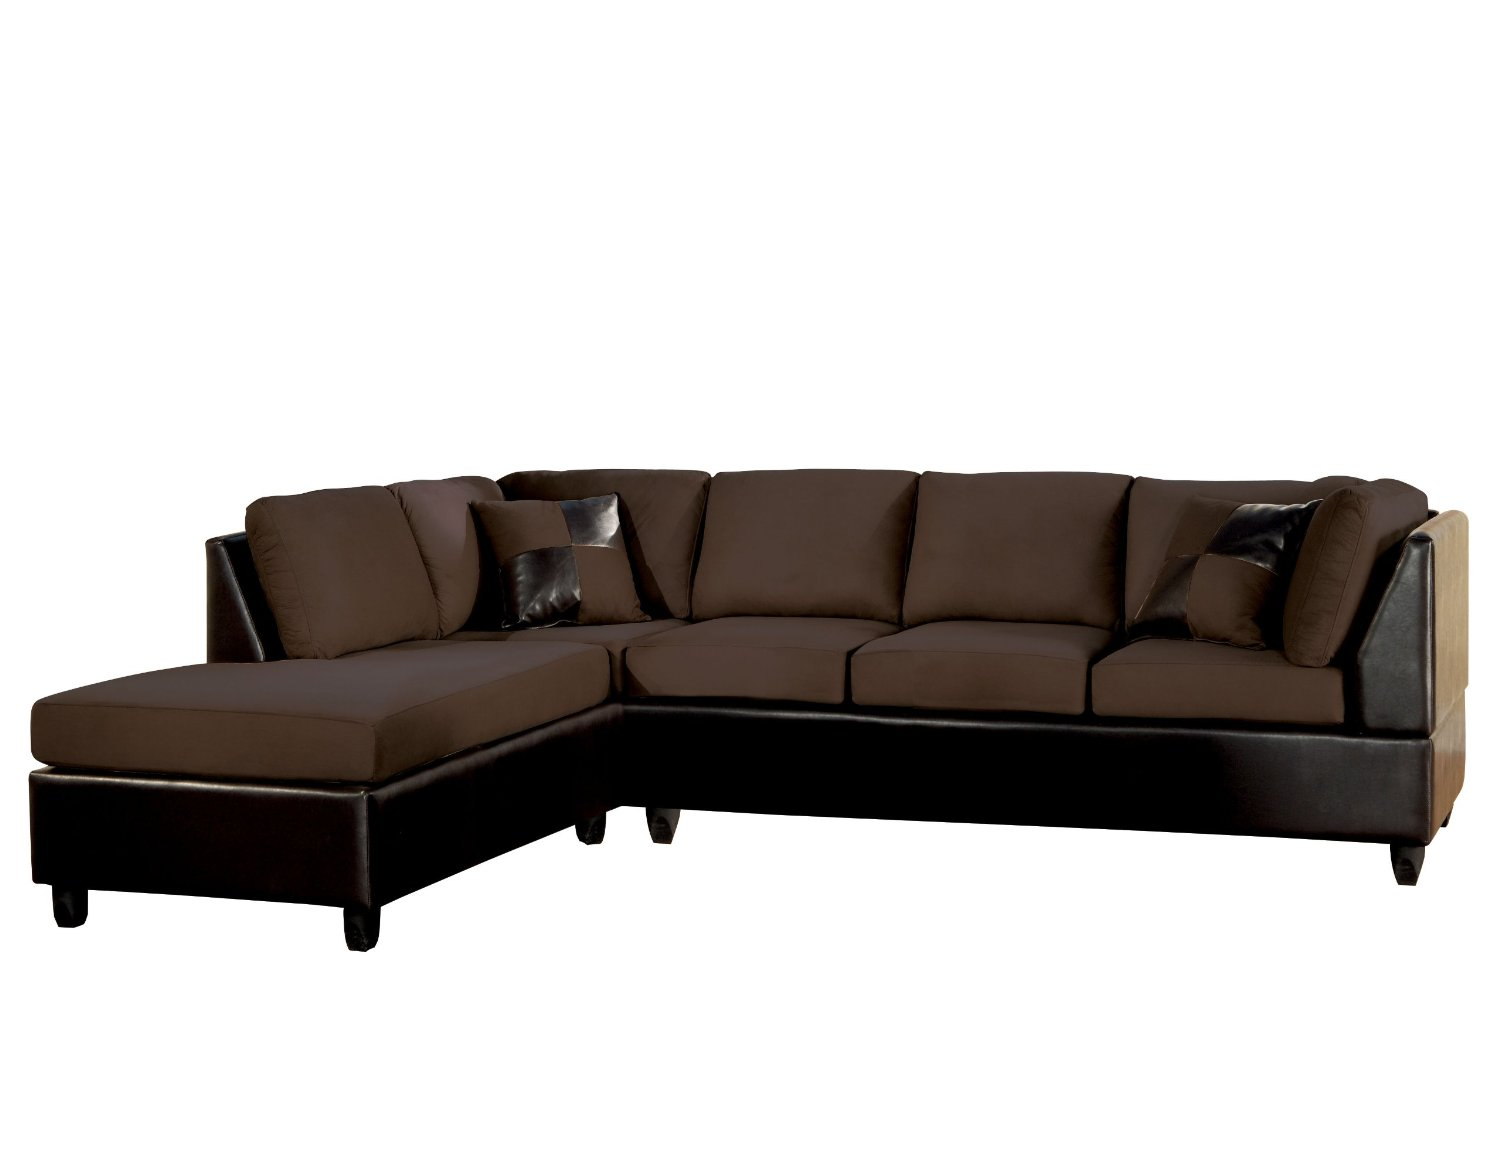 Sectional Sofa Sleepers Small Spaces